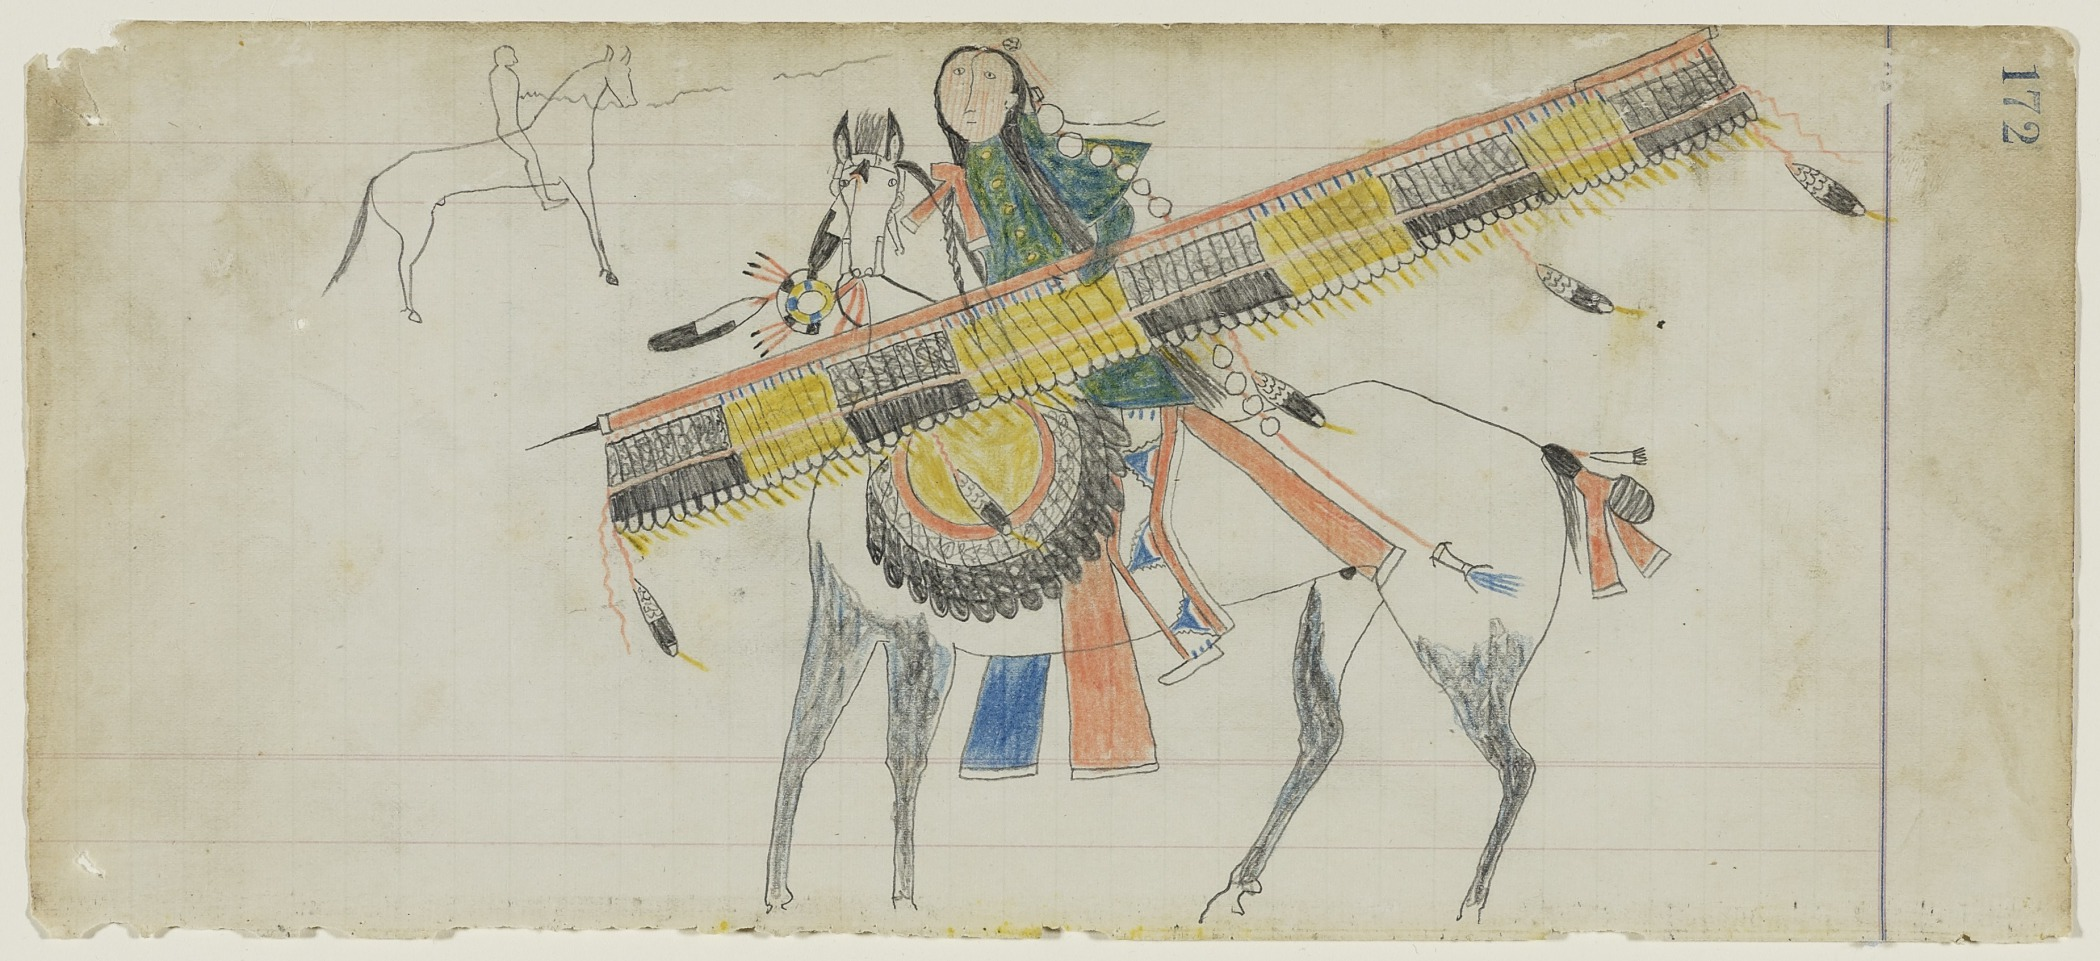 American (Southern Inunaina and/or Southern Tsistsistas), active late 19th century, Untitled (A Crazy Dog Society Warrior) , page 172 from the  Frank Henderson Ledger , about 1882. Graphite and colored pencil on laid ledger paper, 5 5/16 × 11 7/8 in. Hood Museum of Art, Dartmouth College: Mark Lansburgh Ledger Drawing Collection; Partial gift of Mark Lansburgh, Class of 1949; and partial purchase through the Mrs. Harvey P. Hood W'18 Fund, and the Offices of the President and Provost of Dartmouth College; 2007.65.51.